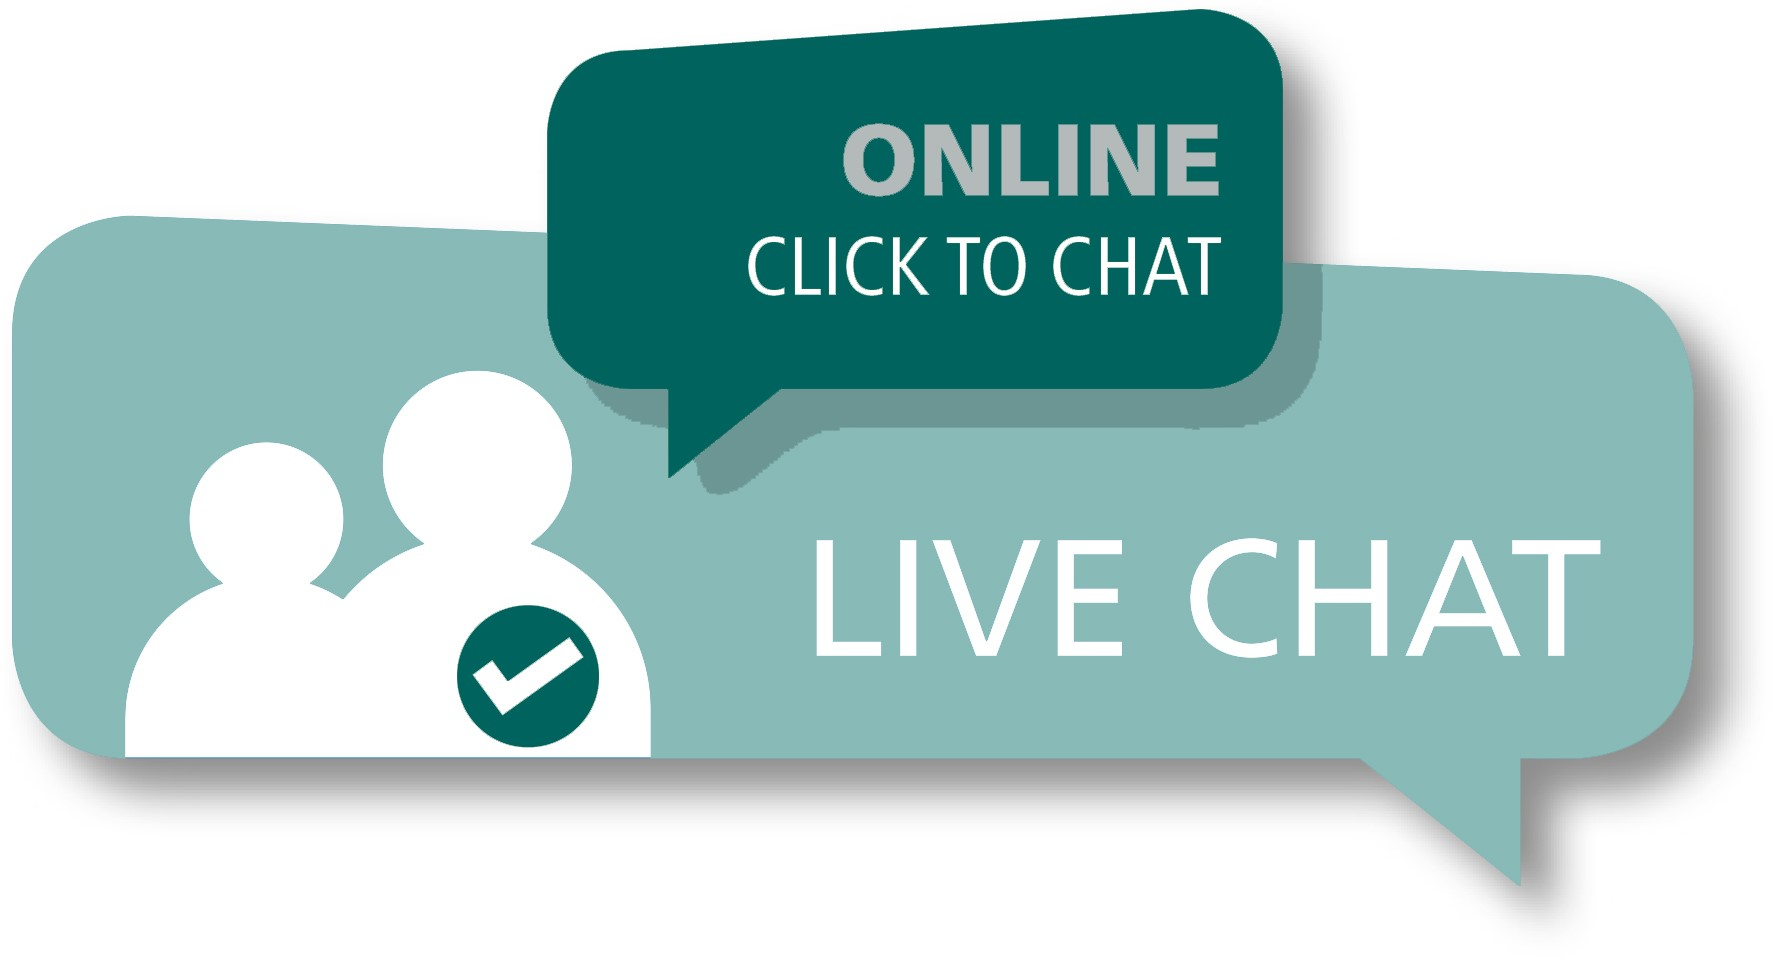 Benefits and risks of using a live web chat application